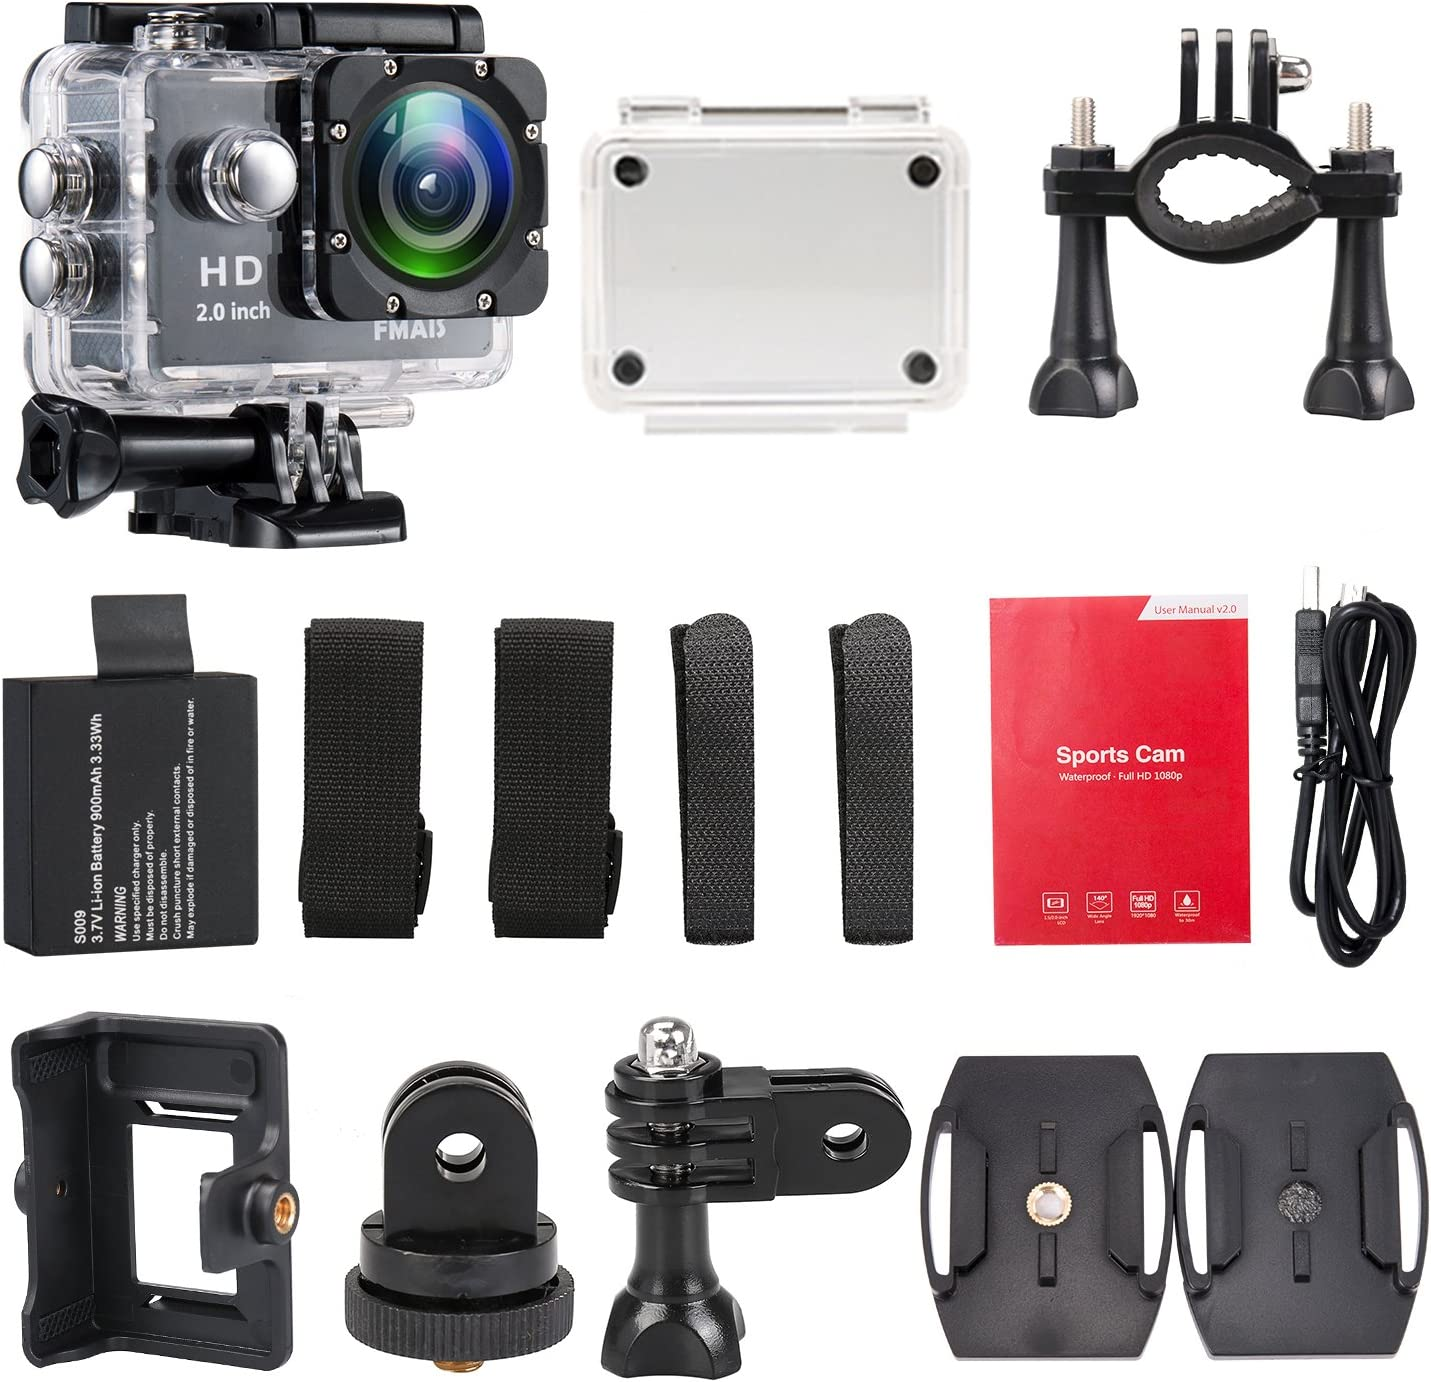 Fmais Action Camera Full Hd 1080p Waterproof Cam 2 Inch Lcd Underwater 30 M 98 Ft Diving 140 Wide Angle Sports Camera With 2 Batteries And Mounting Accessories Kits Black Sport Freizeit